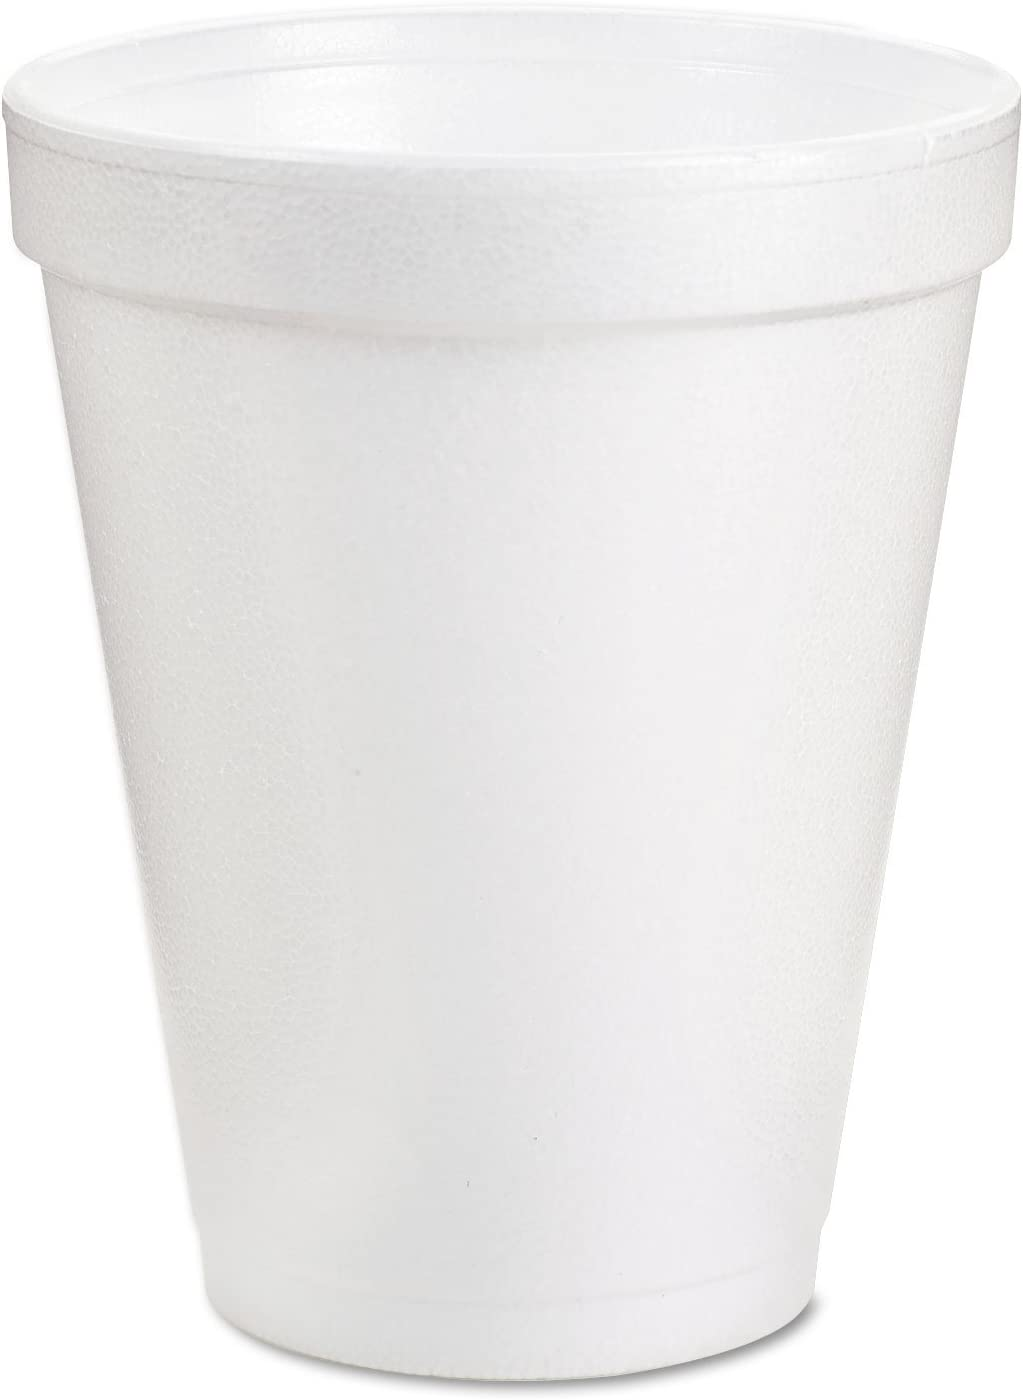 DART 8J8 Insulated Styrofoam Cup, 8 Oz, 1000/CT, White, 8 Ounce